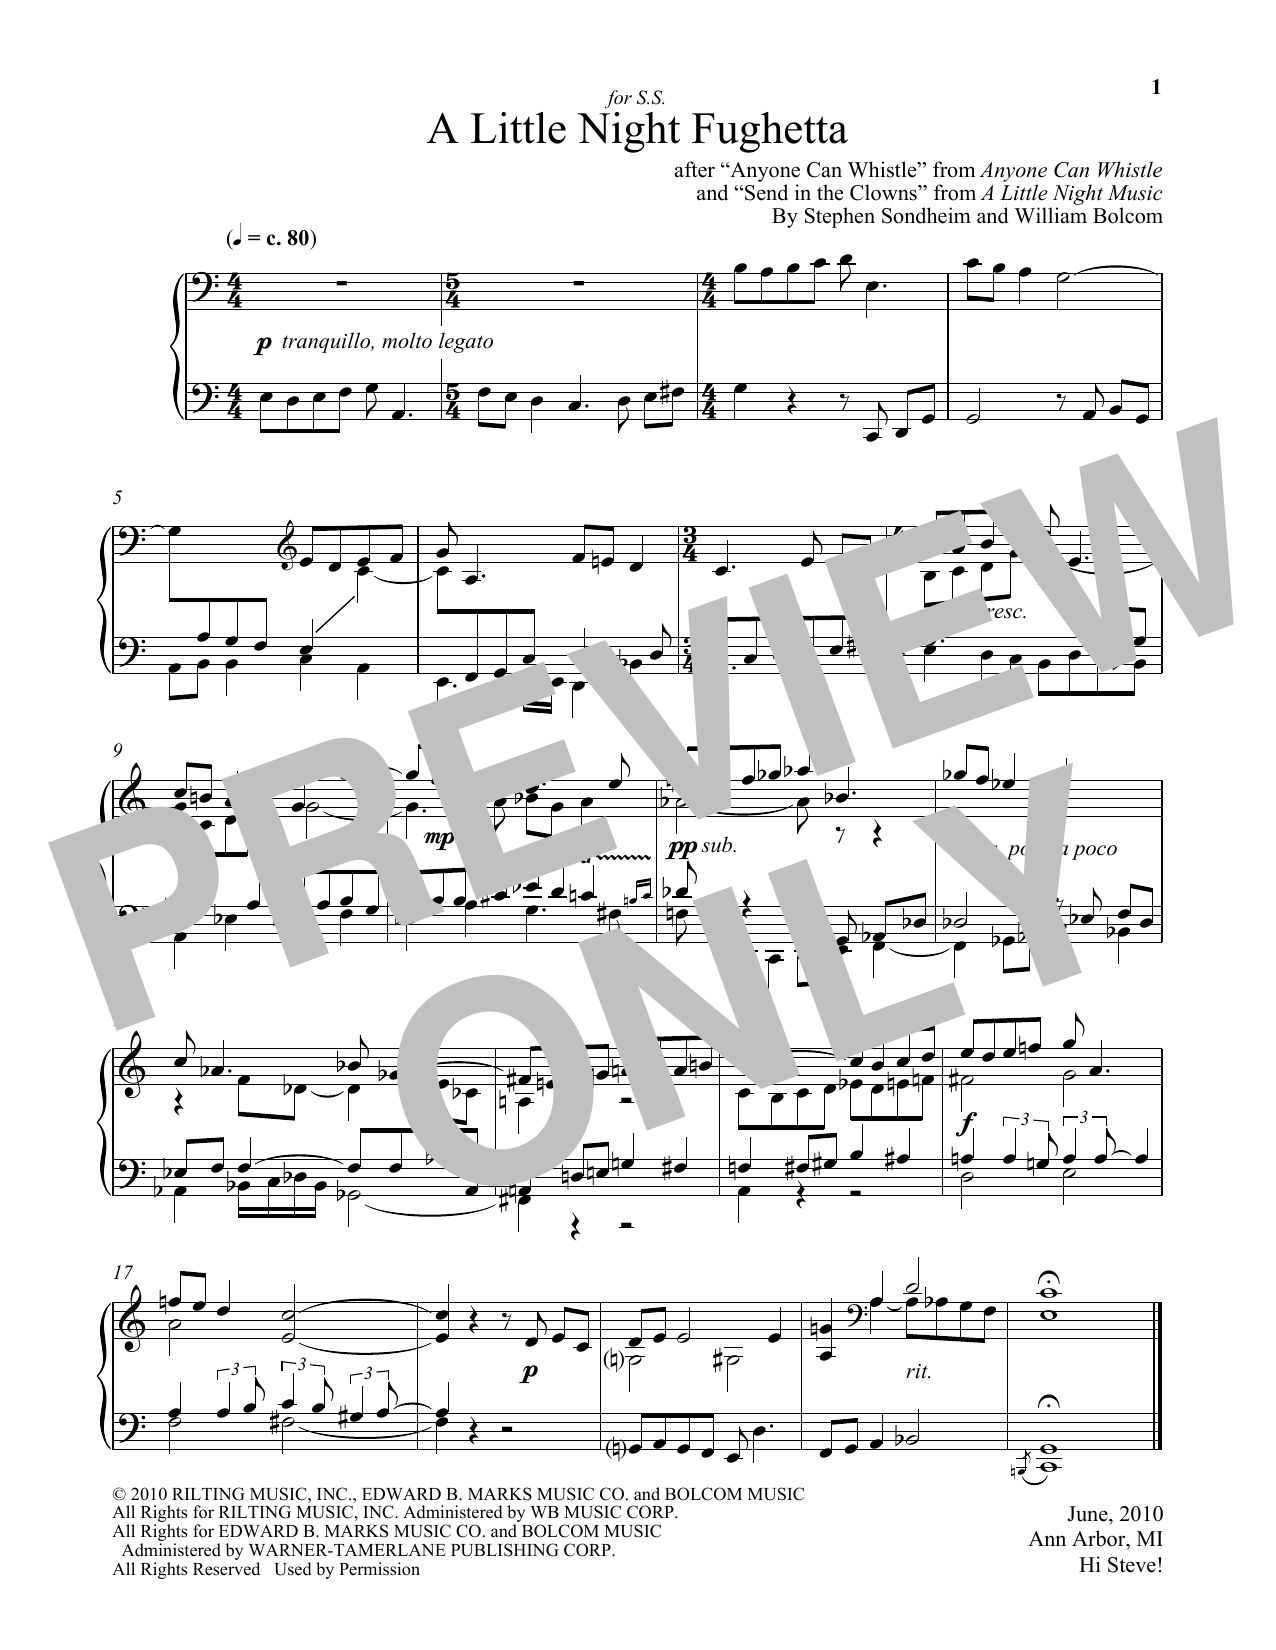 William Bolcom A Little Night Fughetta sheet music notes and chords. Download Printable PDF.